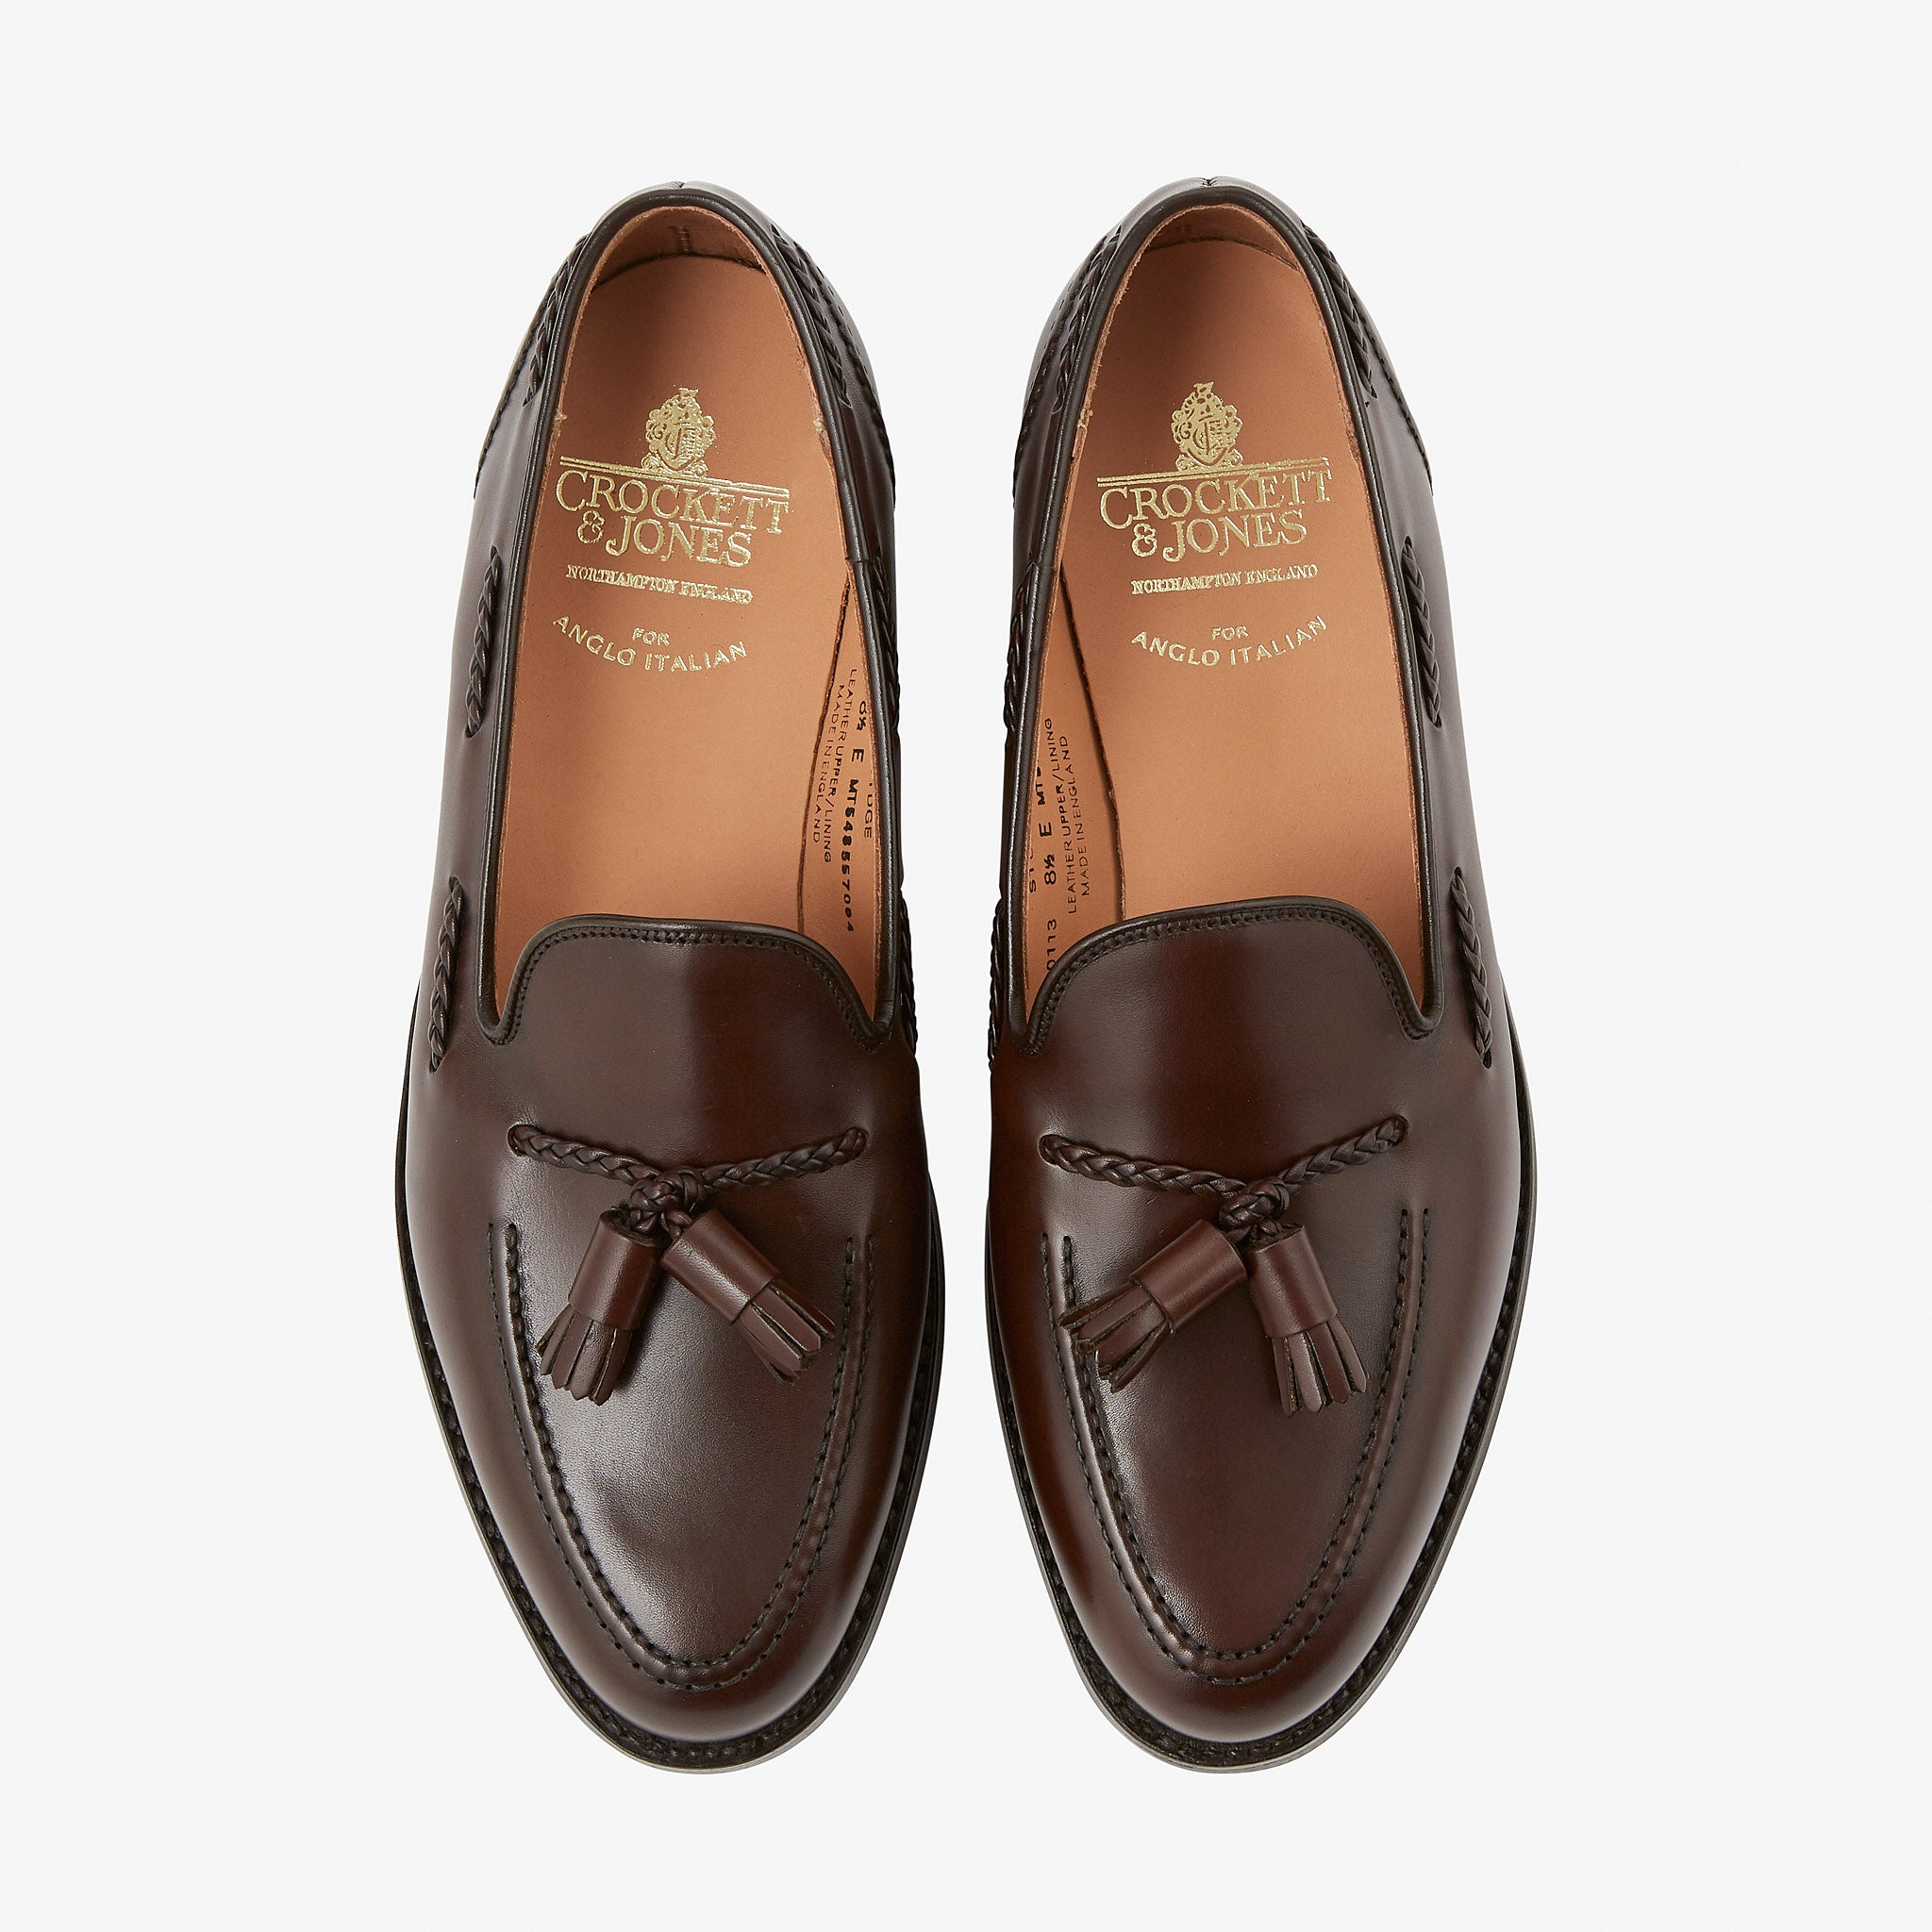 Crockett & Jones Studridge Loafer Espresso Calf City Sole